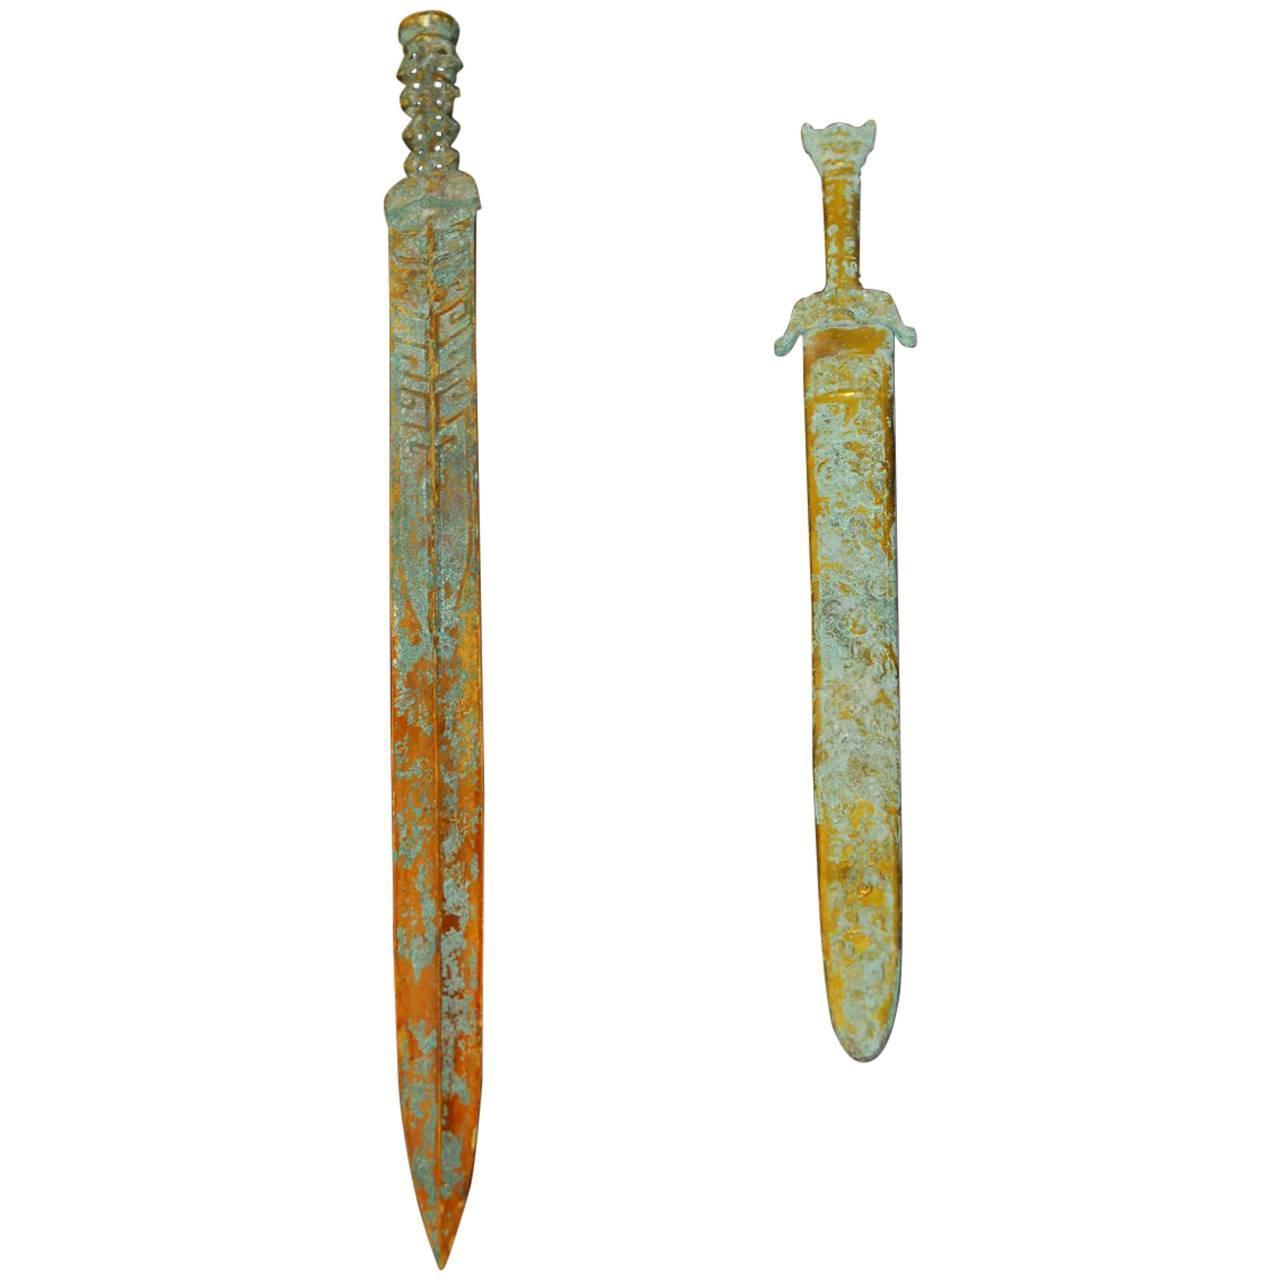 Chinese Qin Dynasty Archaic Brass Swords - Pair : Chairish